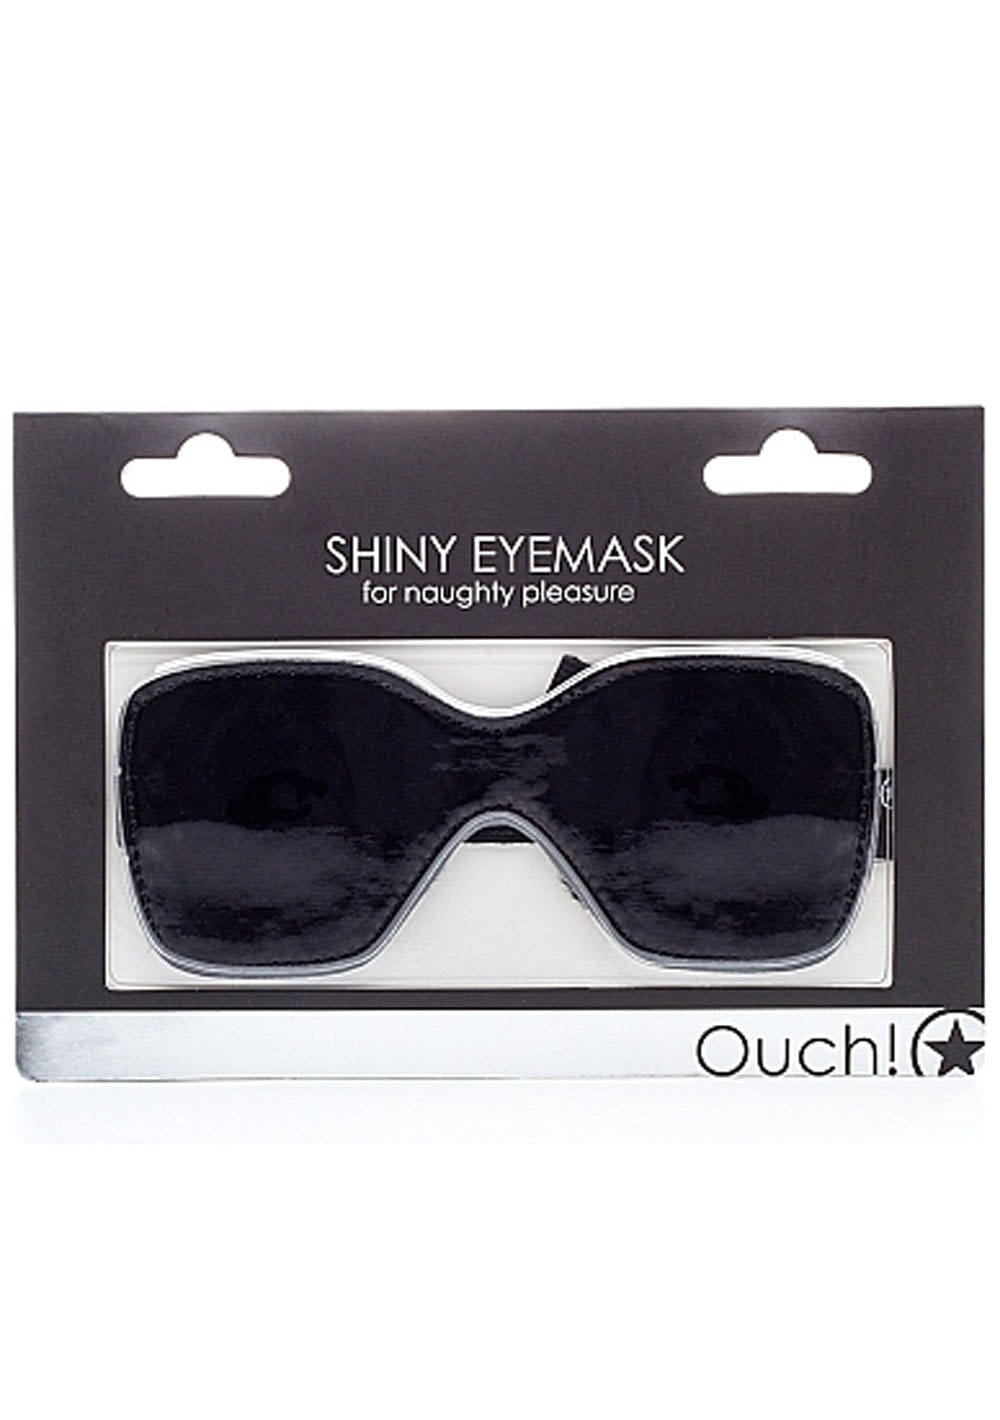 shiny eyemask for naughty pleasure black